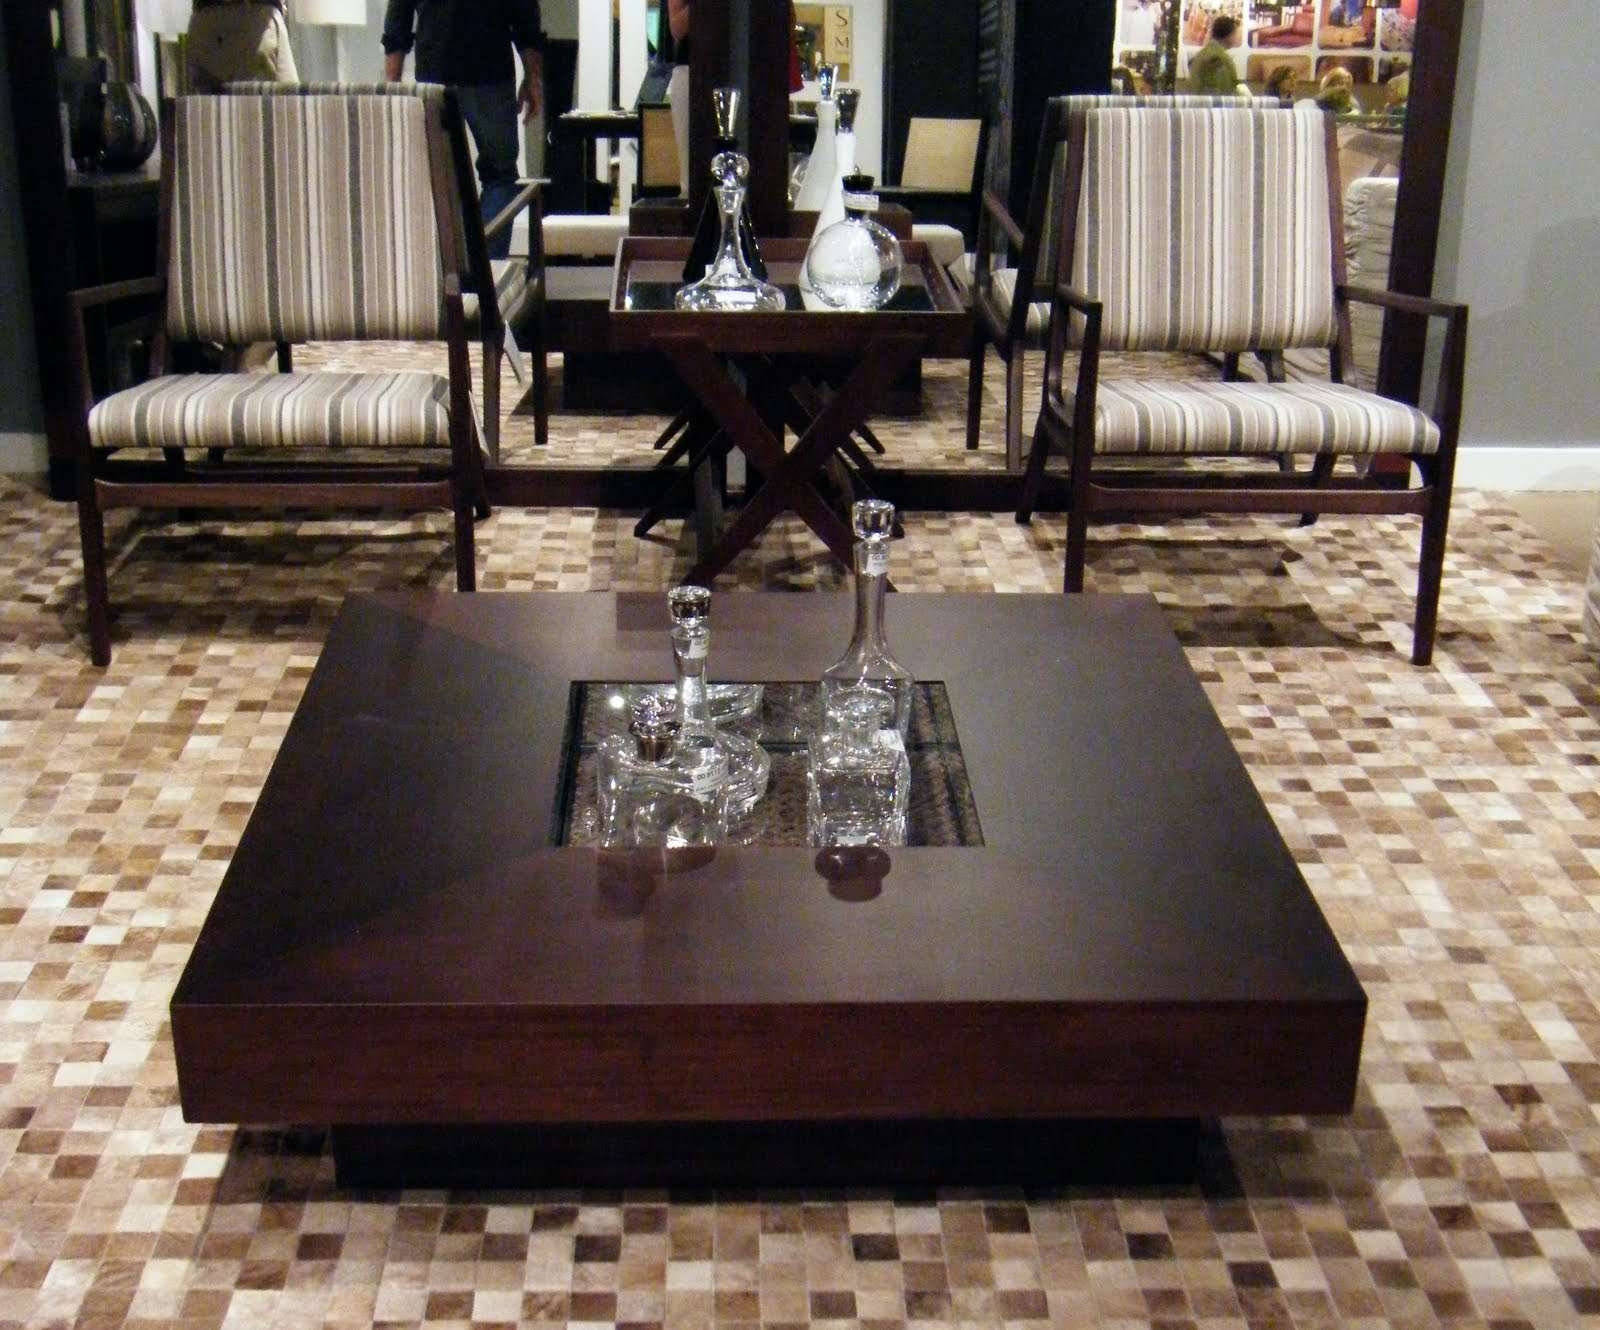 Coffee Table : Magnificent Wood And Glass Coffee Table Black Glass Inside Most Current Big Low Coffee Tables (View 5 of 20)